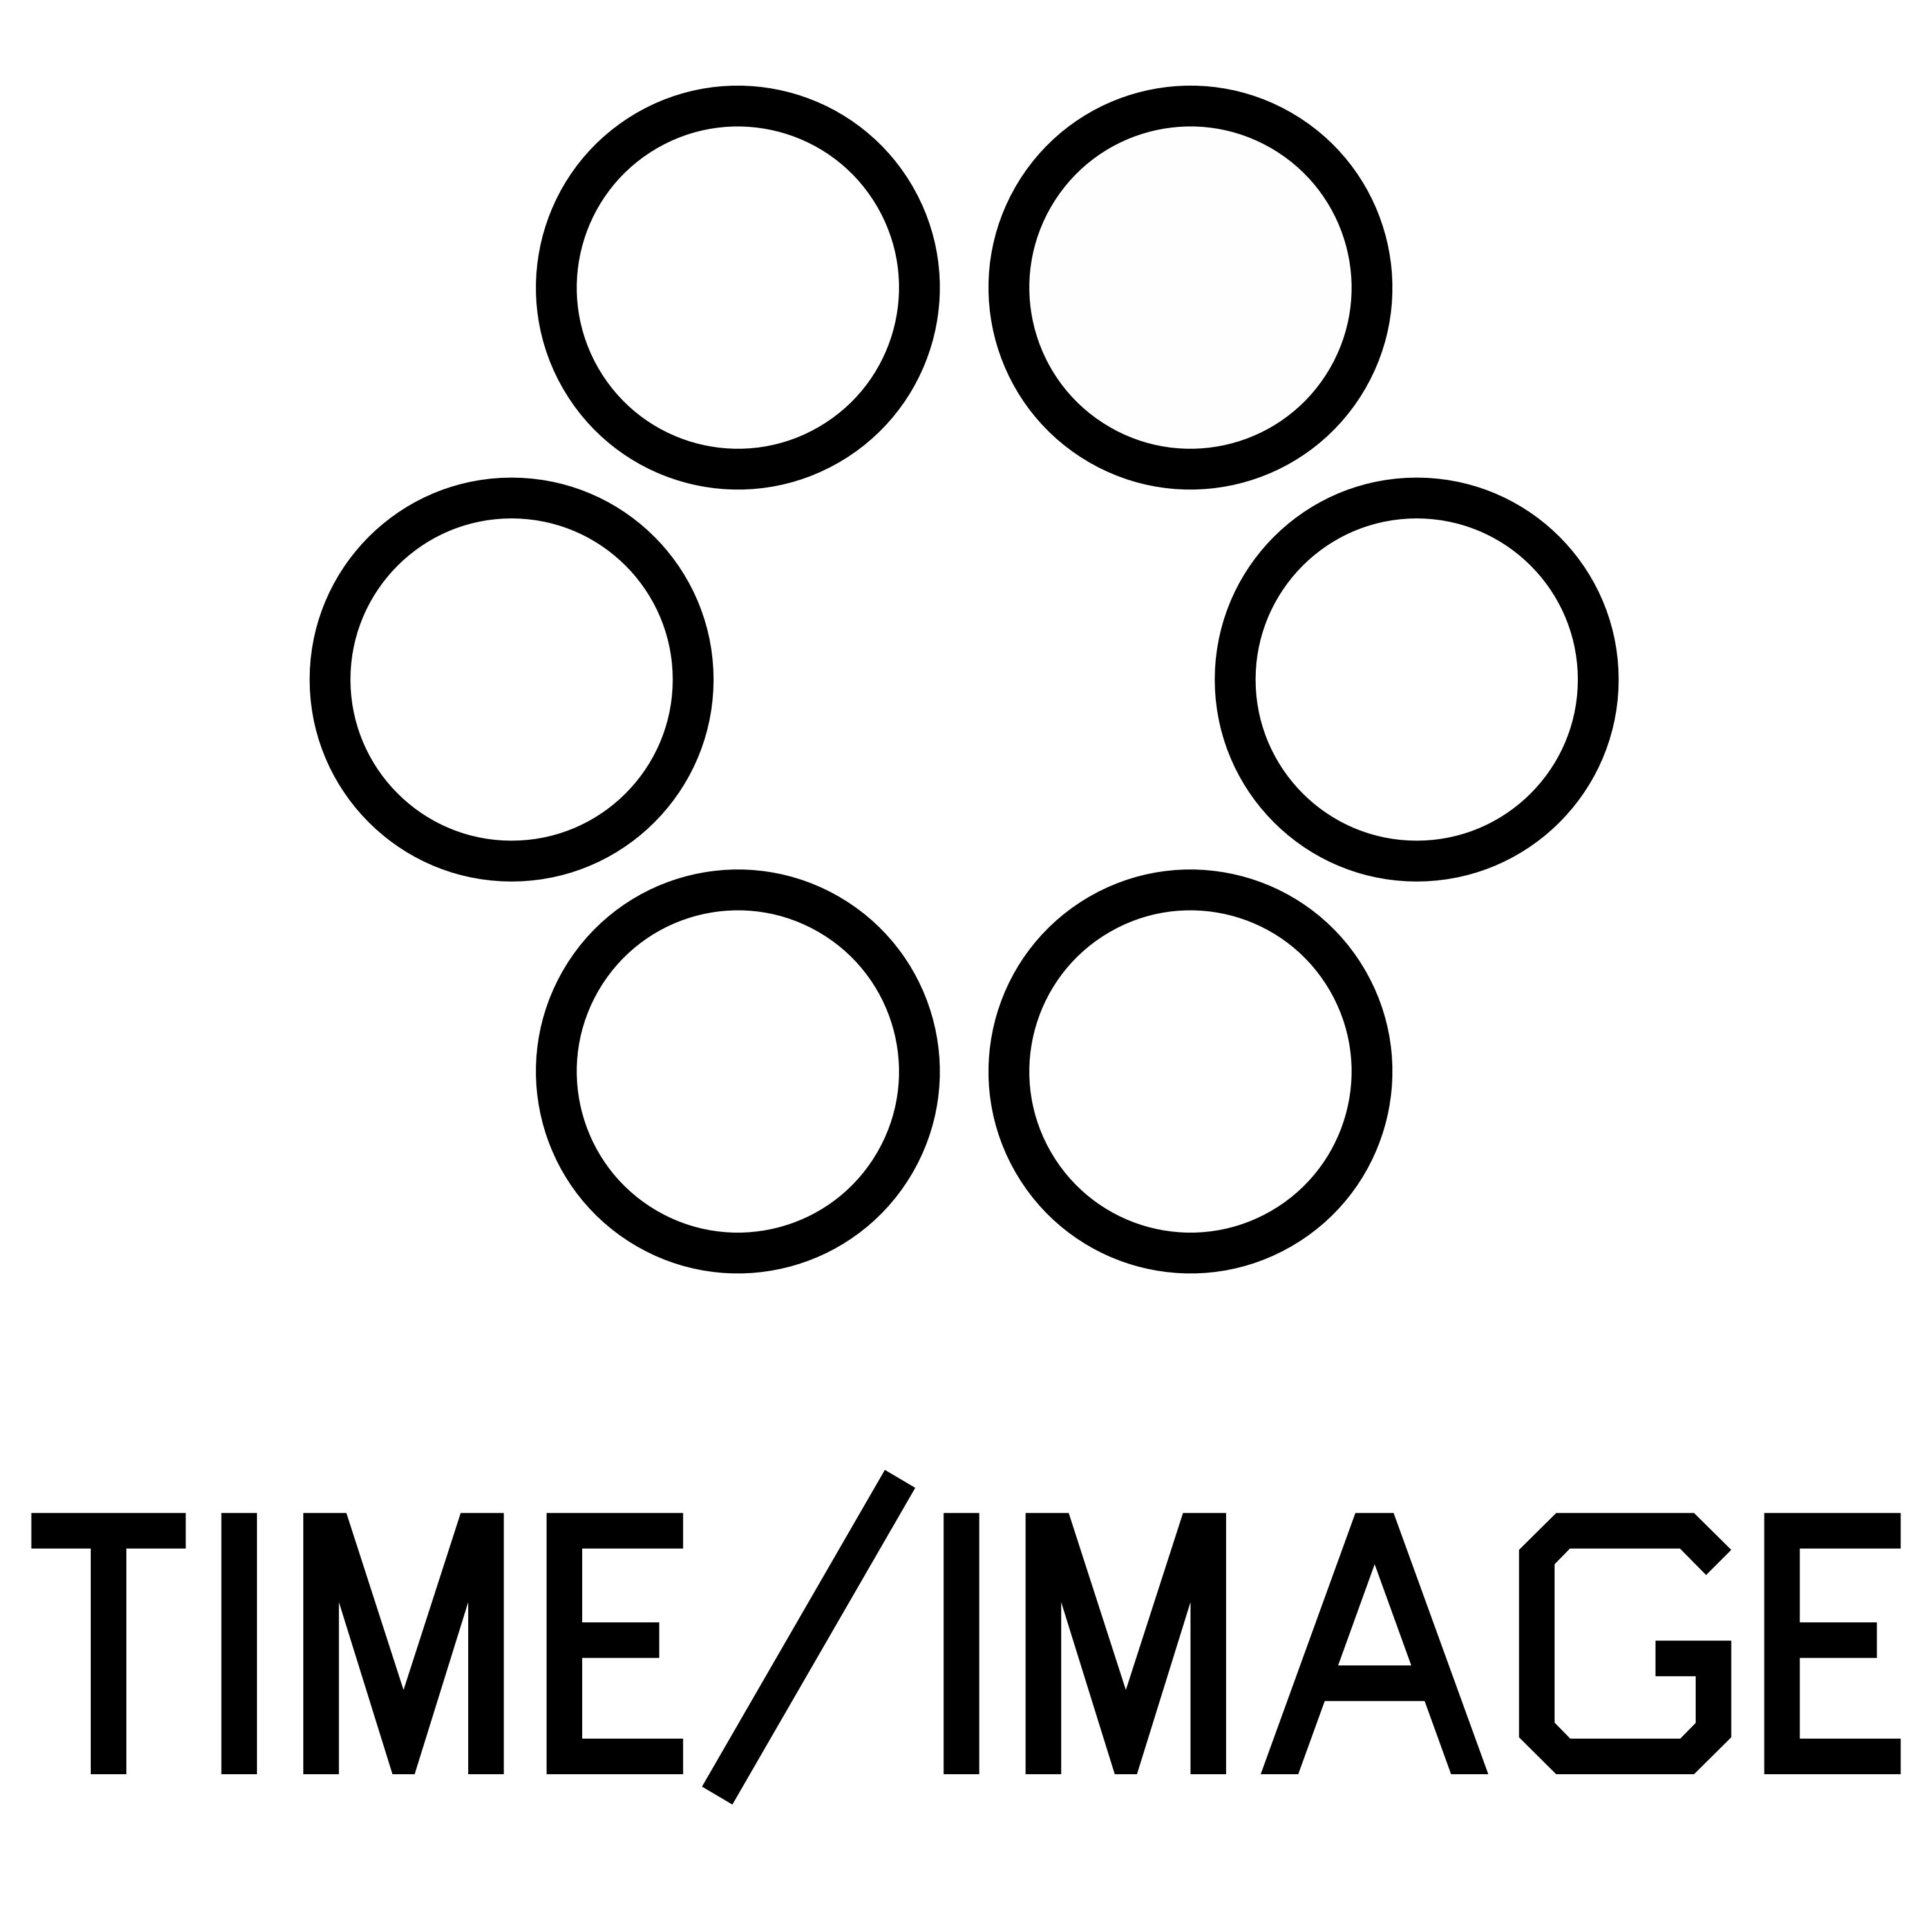 TIME/IMAGE